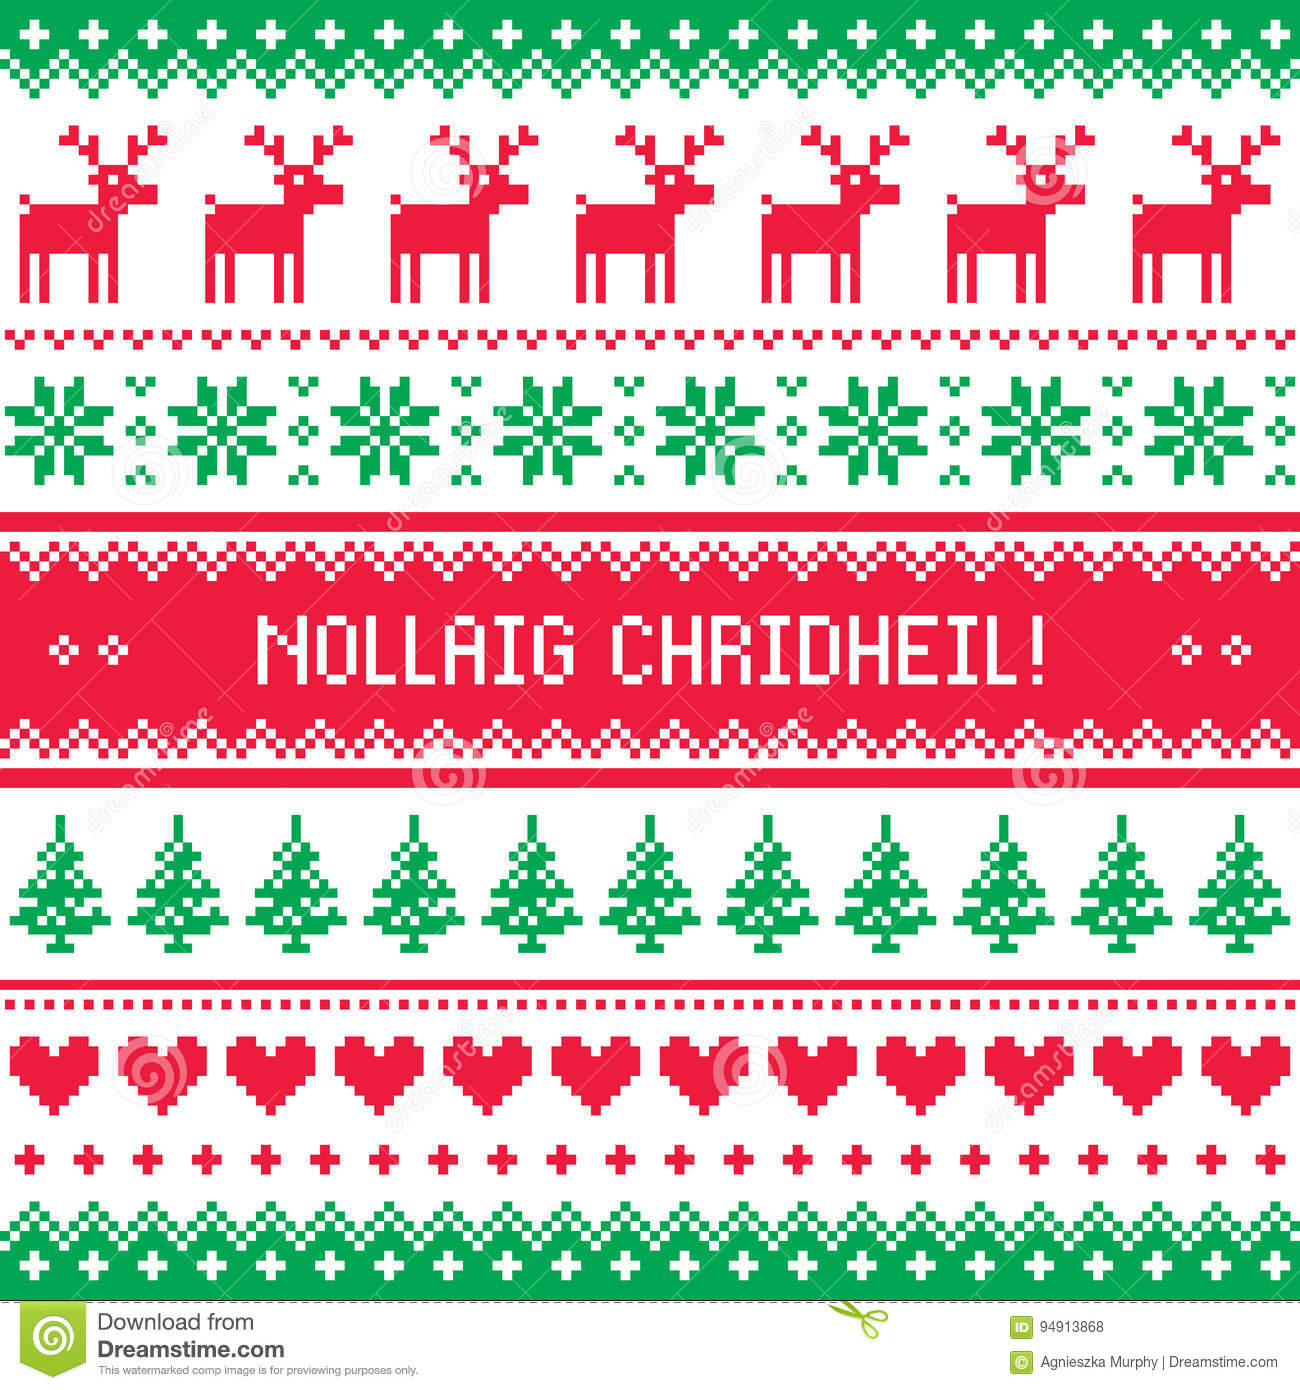 download merry christmas in scottish gaelic greetings card seamless pattern stock vector illustration of - Merry Christmas In Gaelic